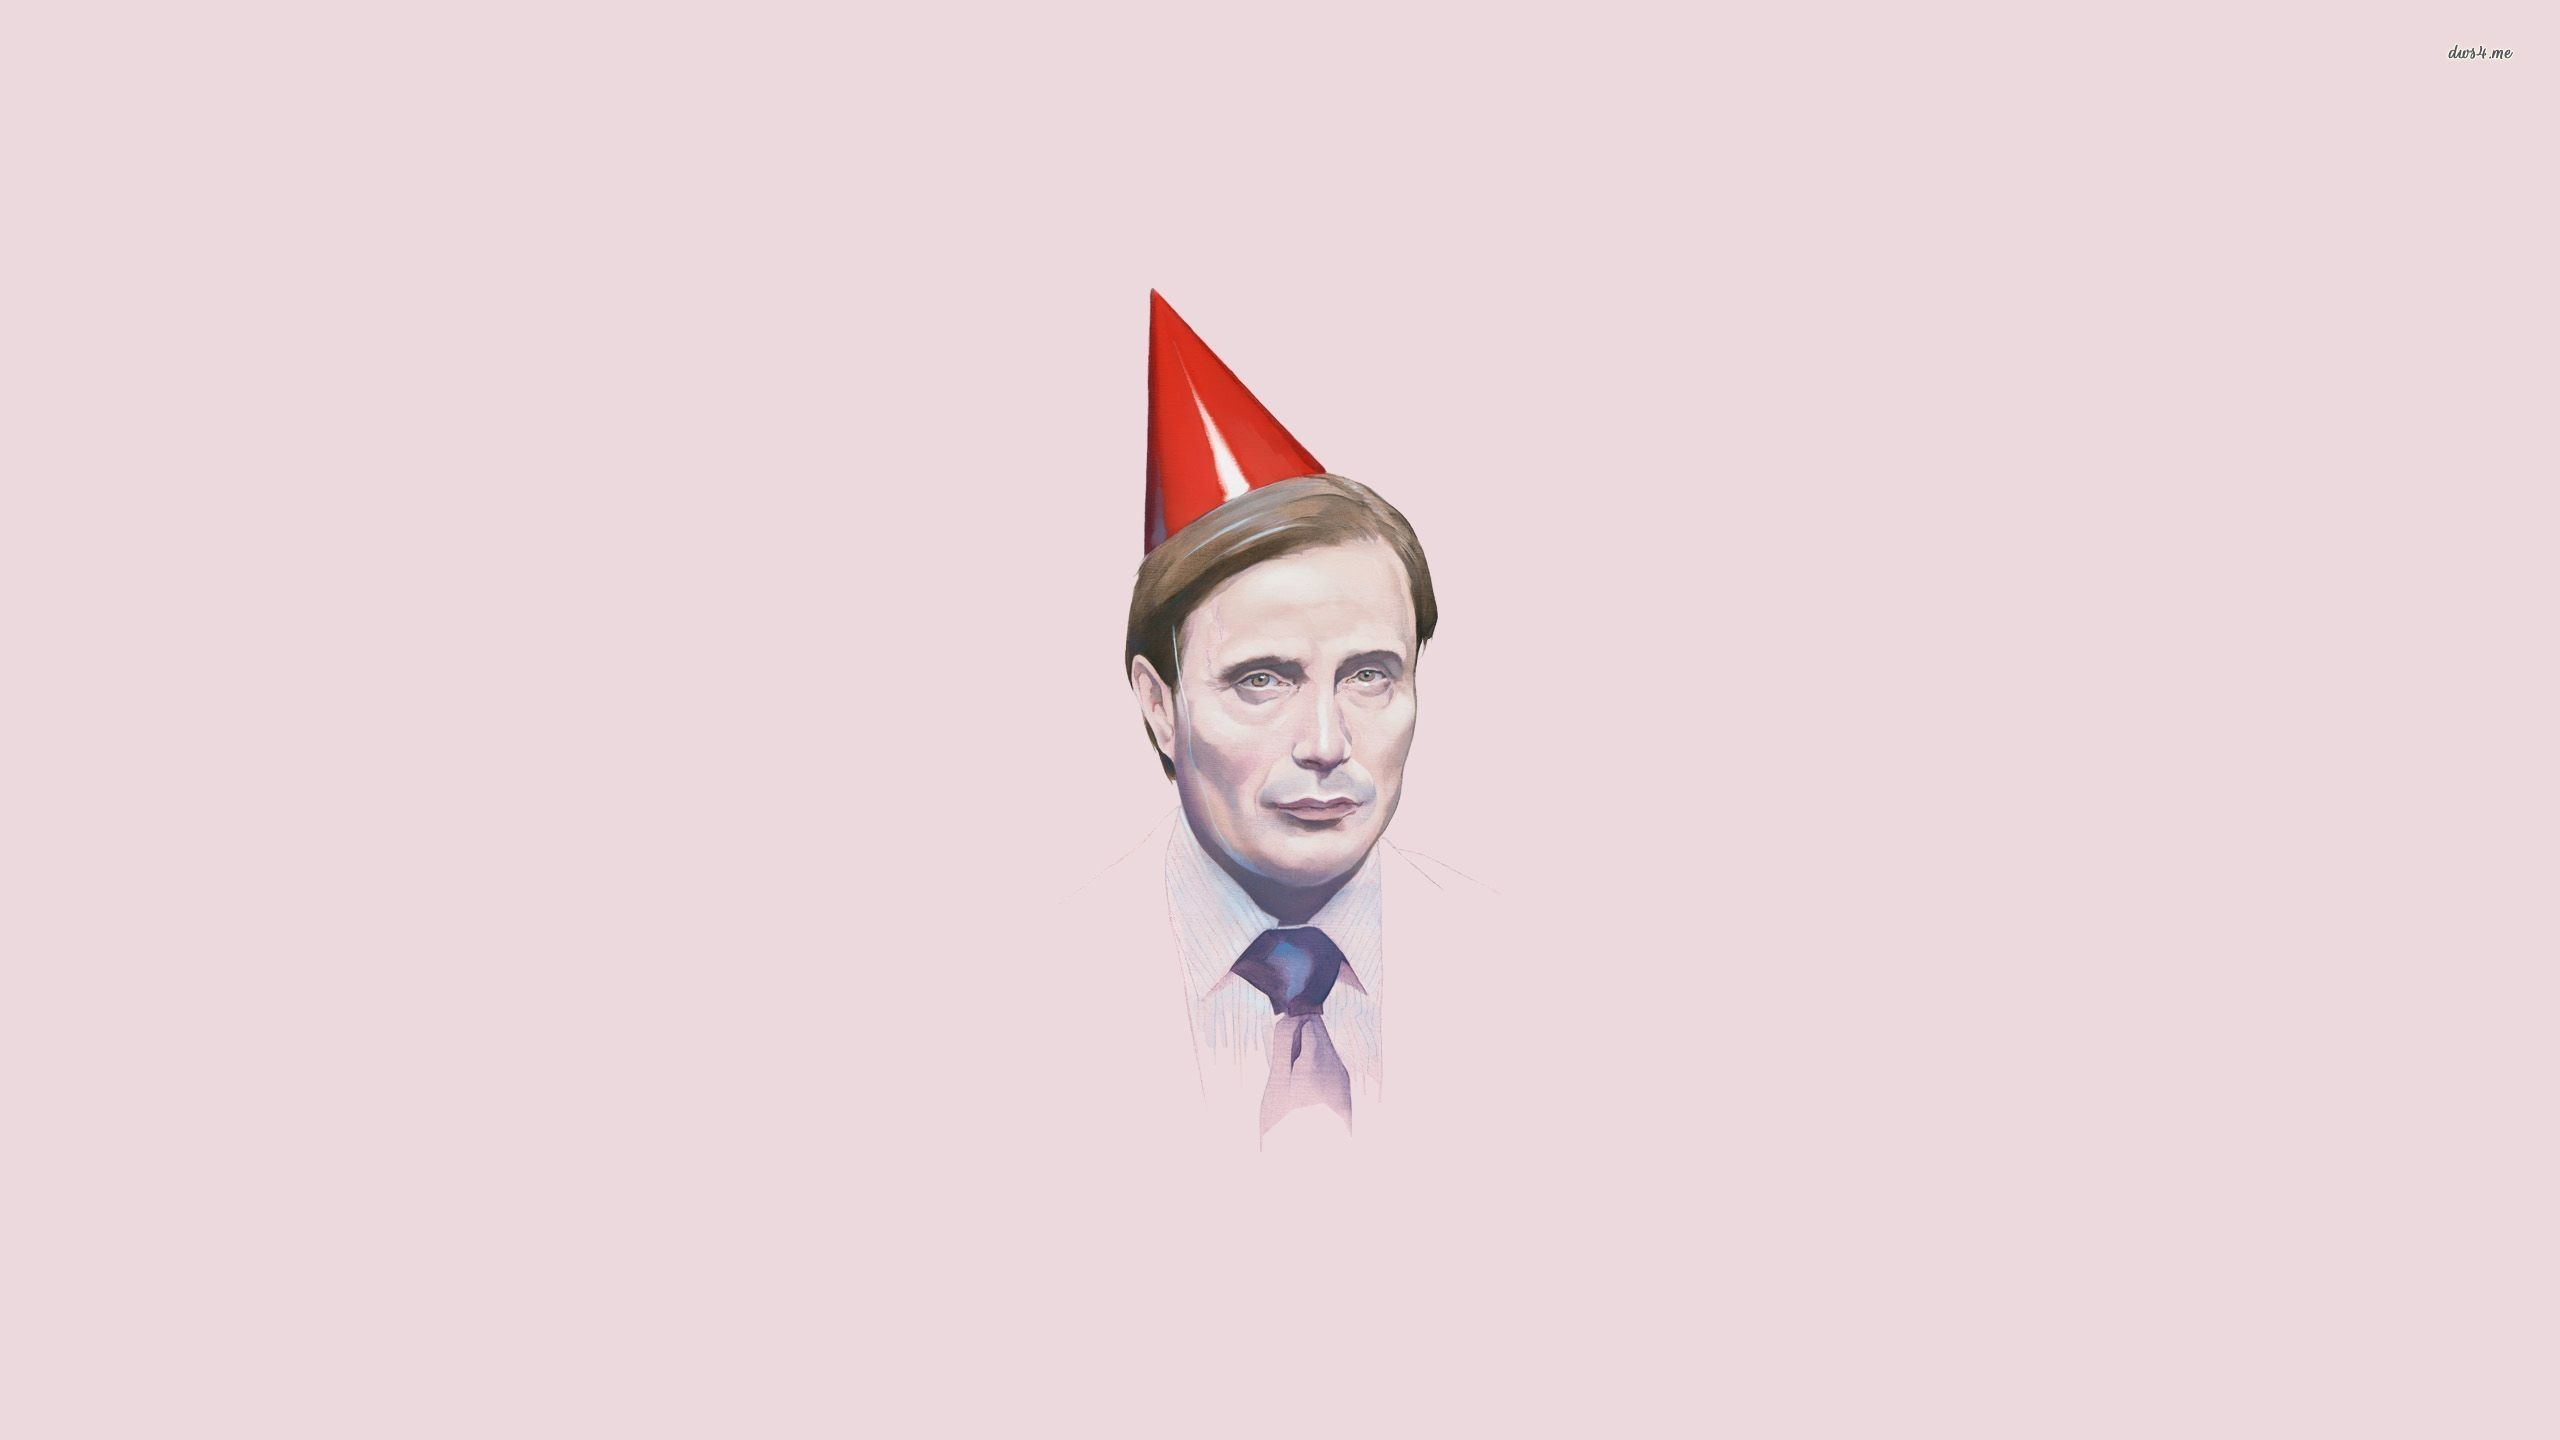 Res: 2560x1440, ... Hannibal with a party hat wallpaper  ...